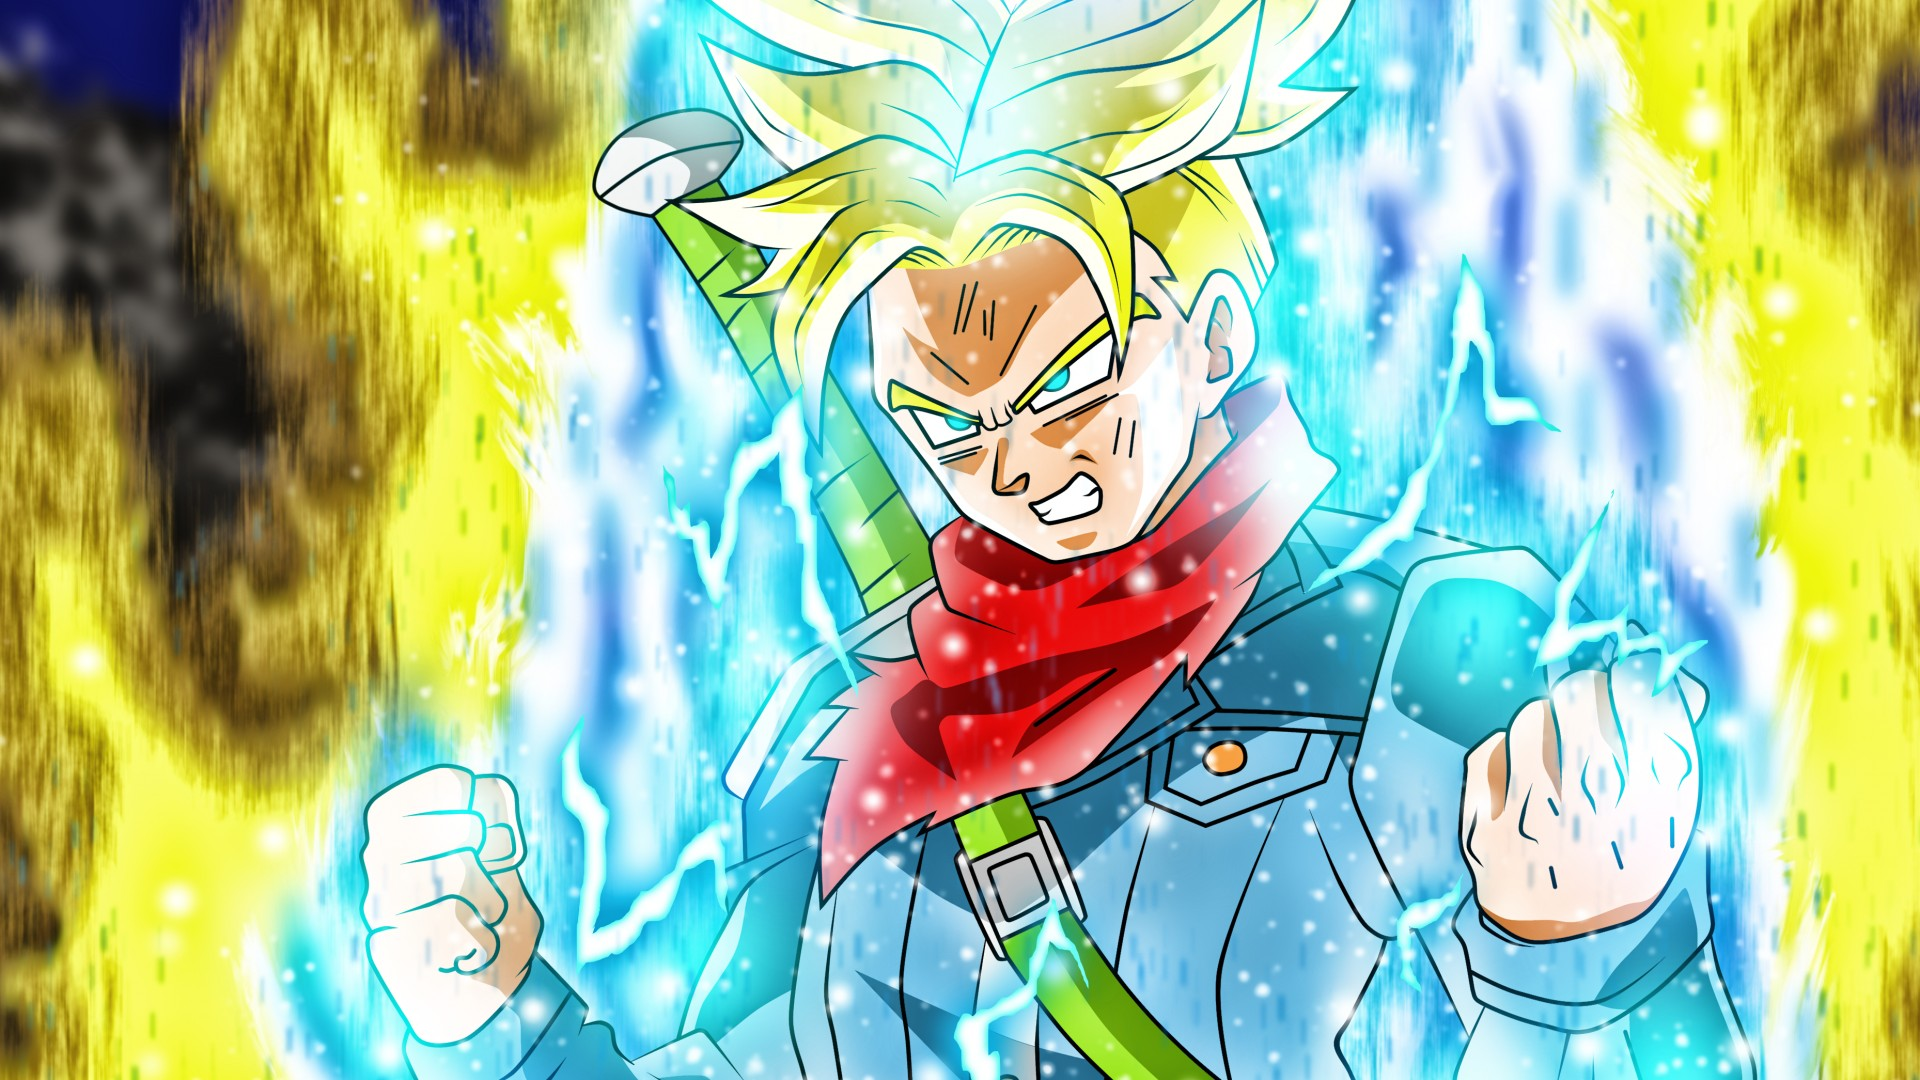 Download Future Trunks Erased Future Trunks Episode Future Trunks New Form 1349644 Hd Wallpaper Backgrounds Download